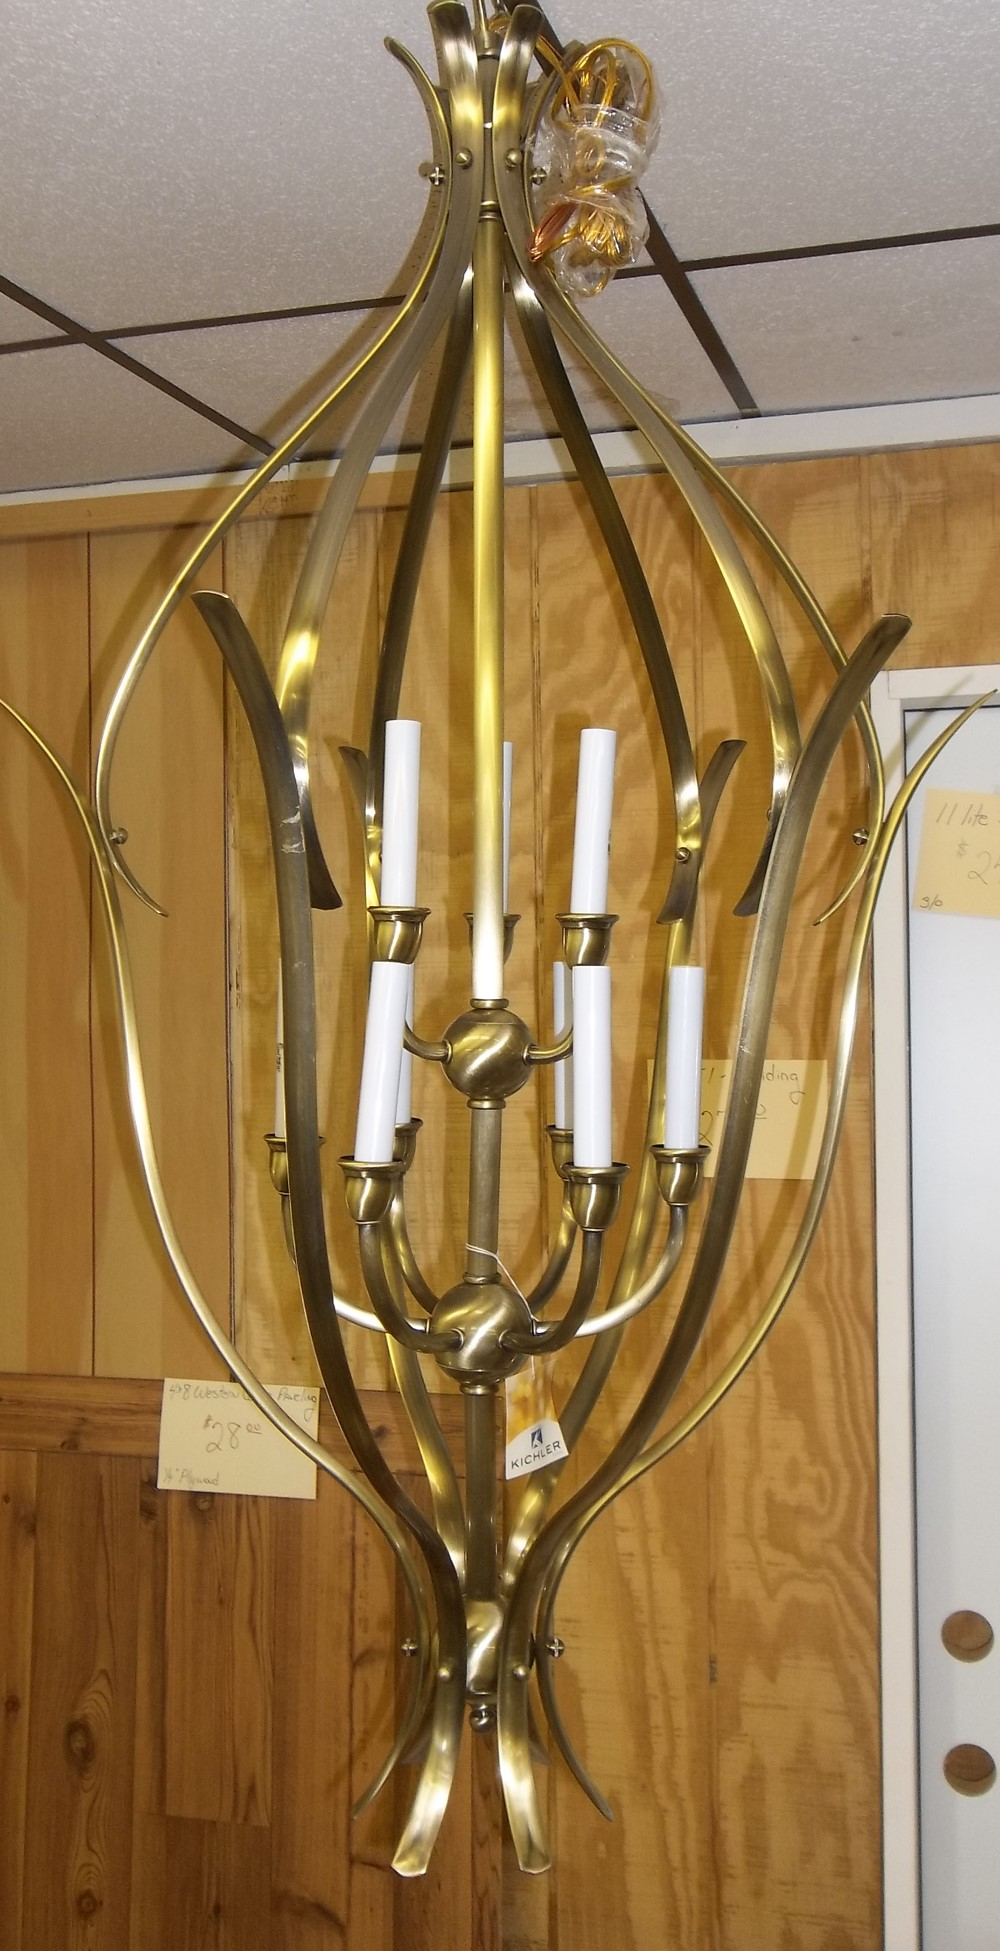 9 light Antique Brass finish $41.00